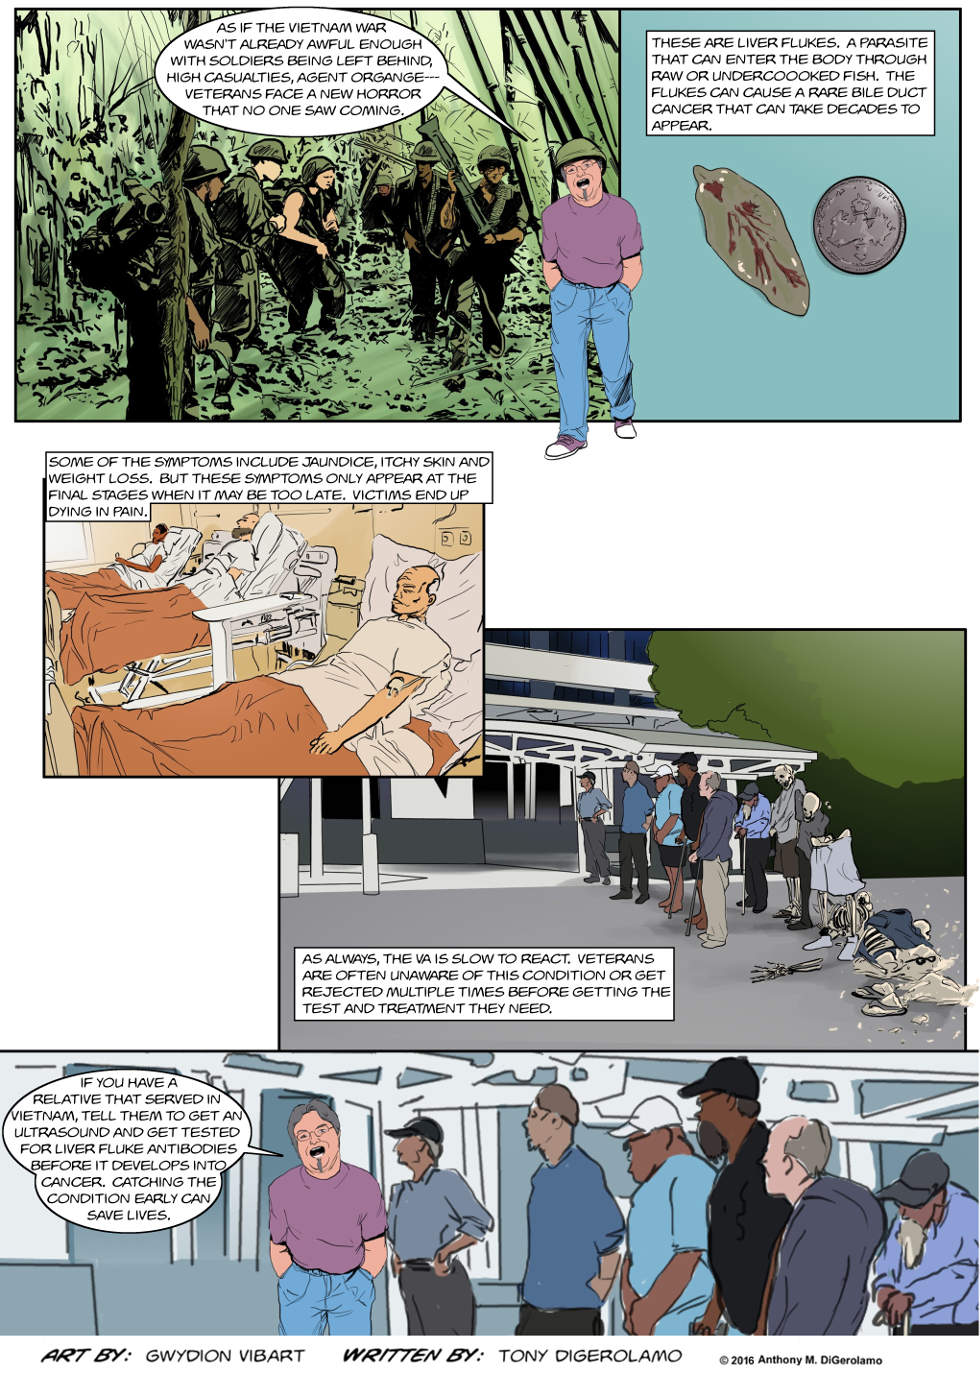 The Antiwar Comic:  The Vietnam Fluke